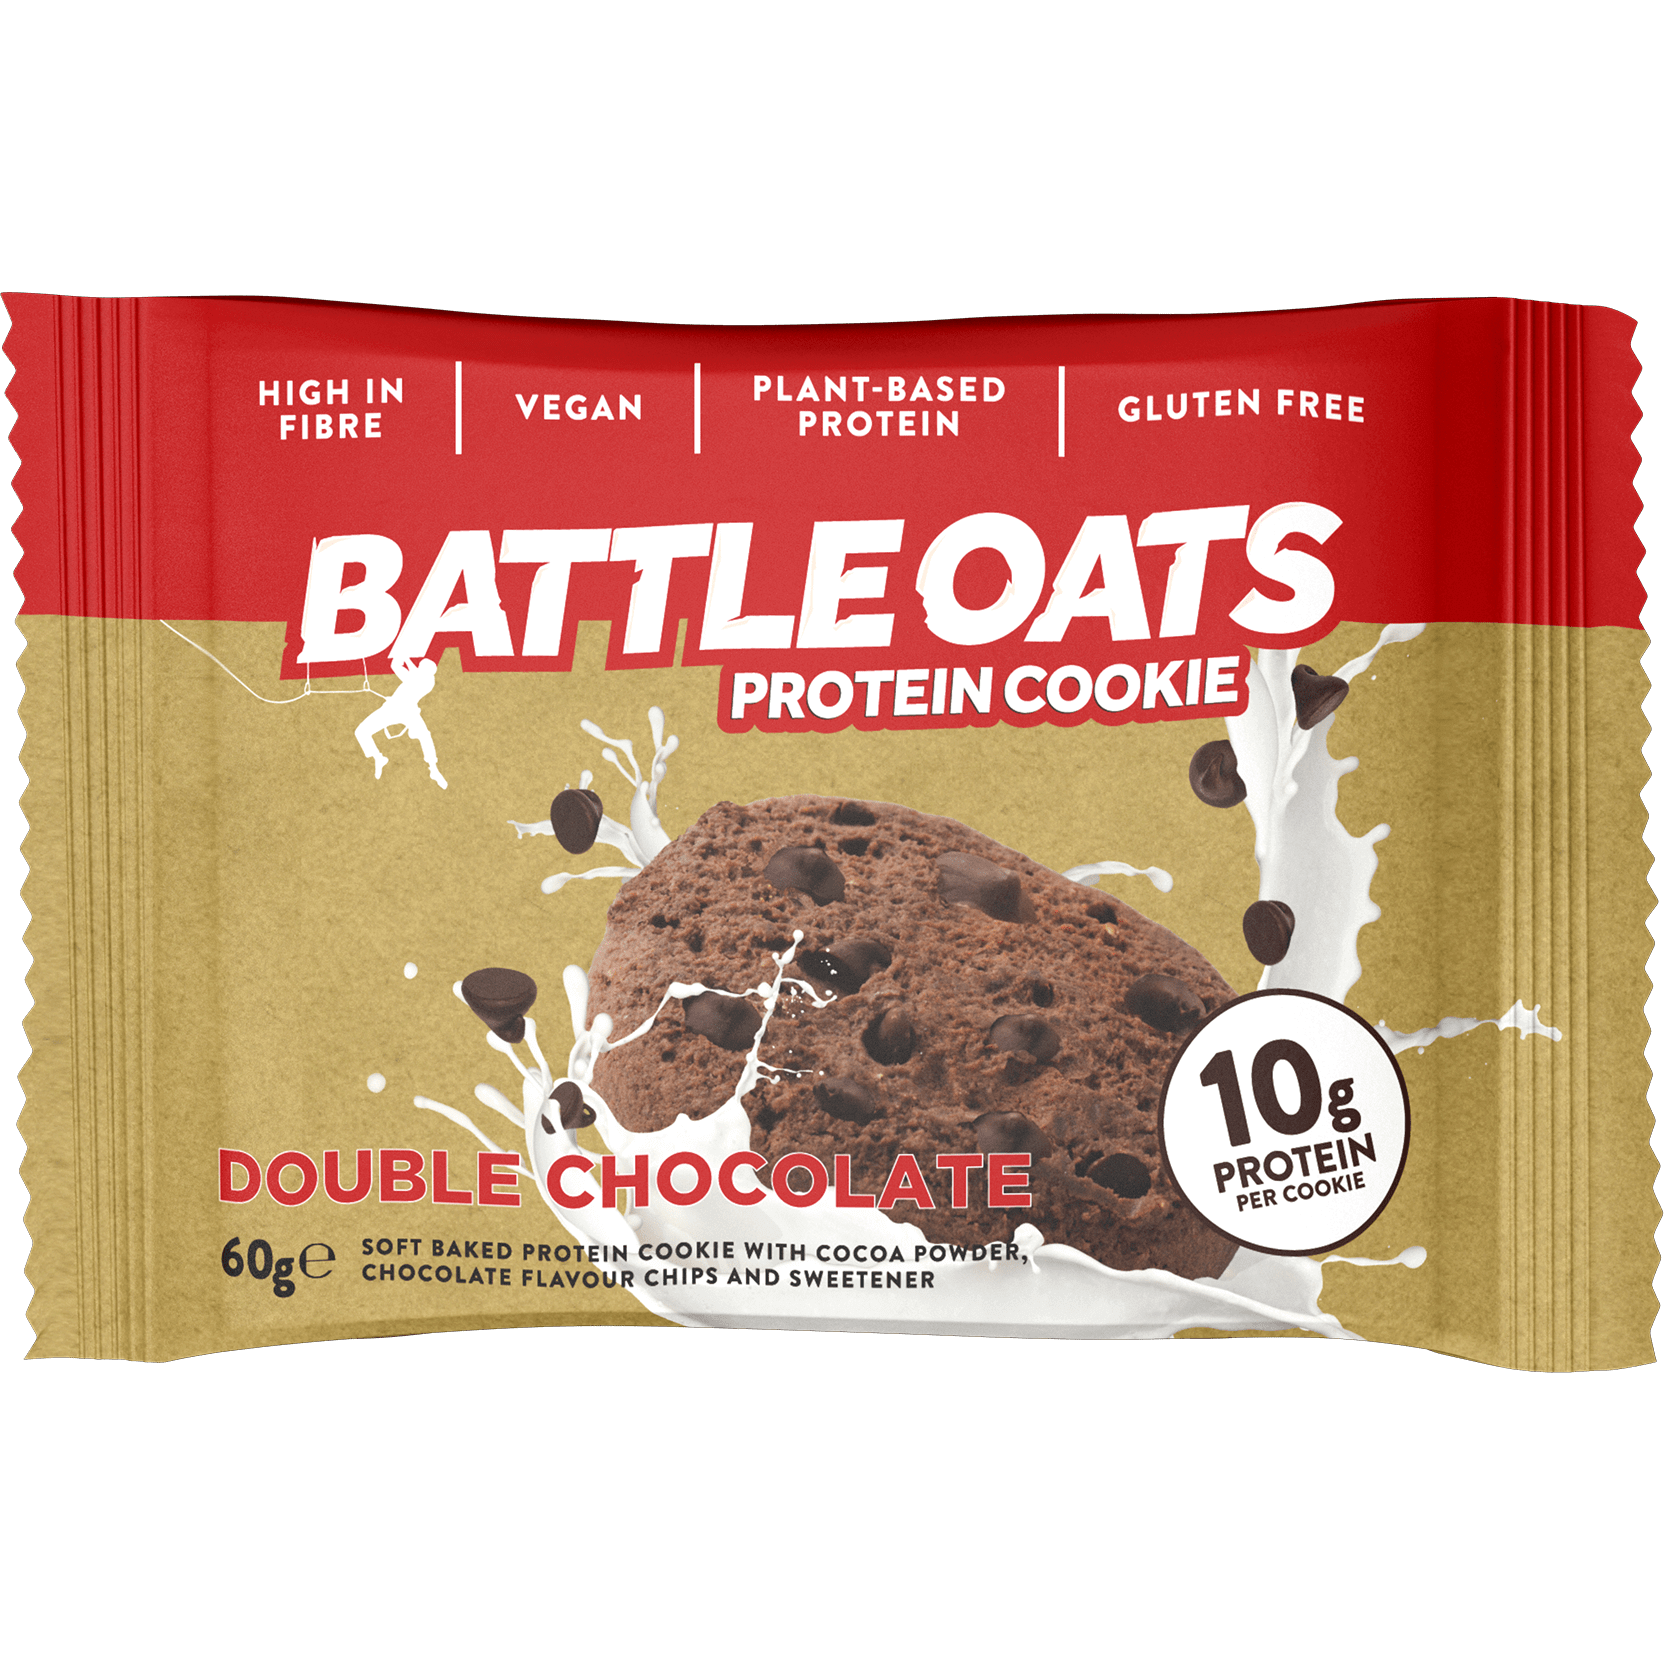 battle-oats-cookies-battle-oats-pick-mix-12-protein-cookies-posted-protein-21689419984_2000x (1)